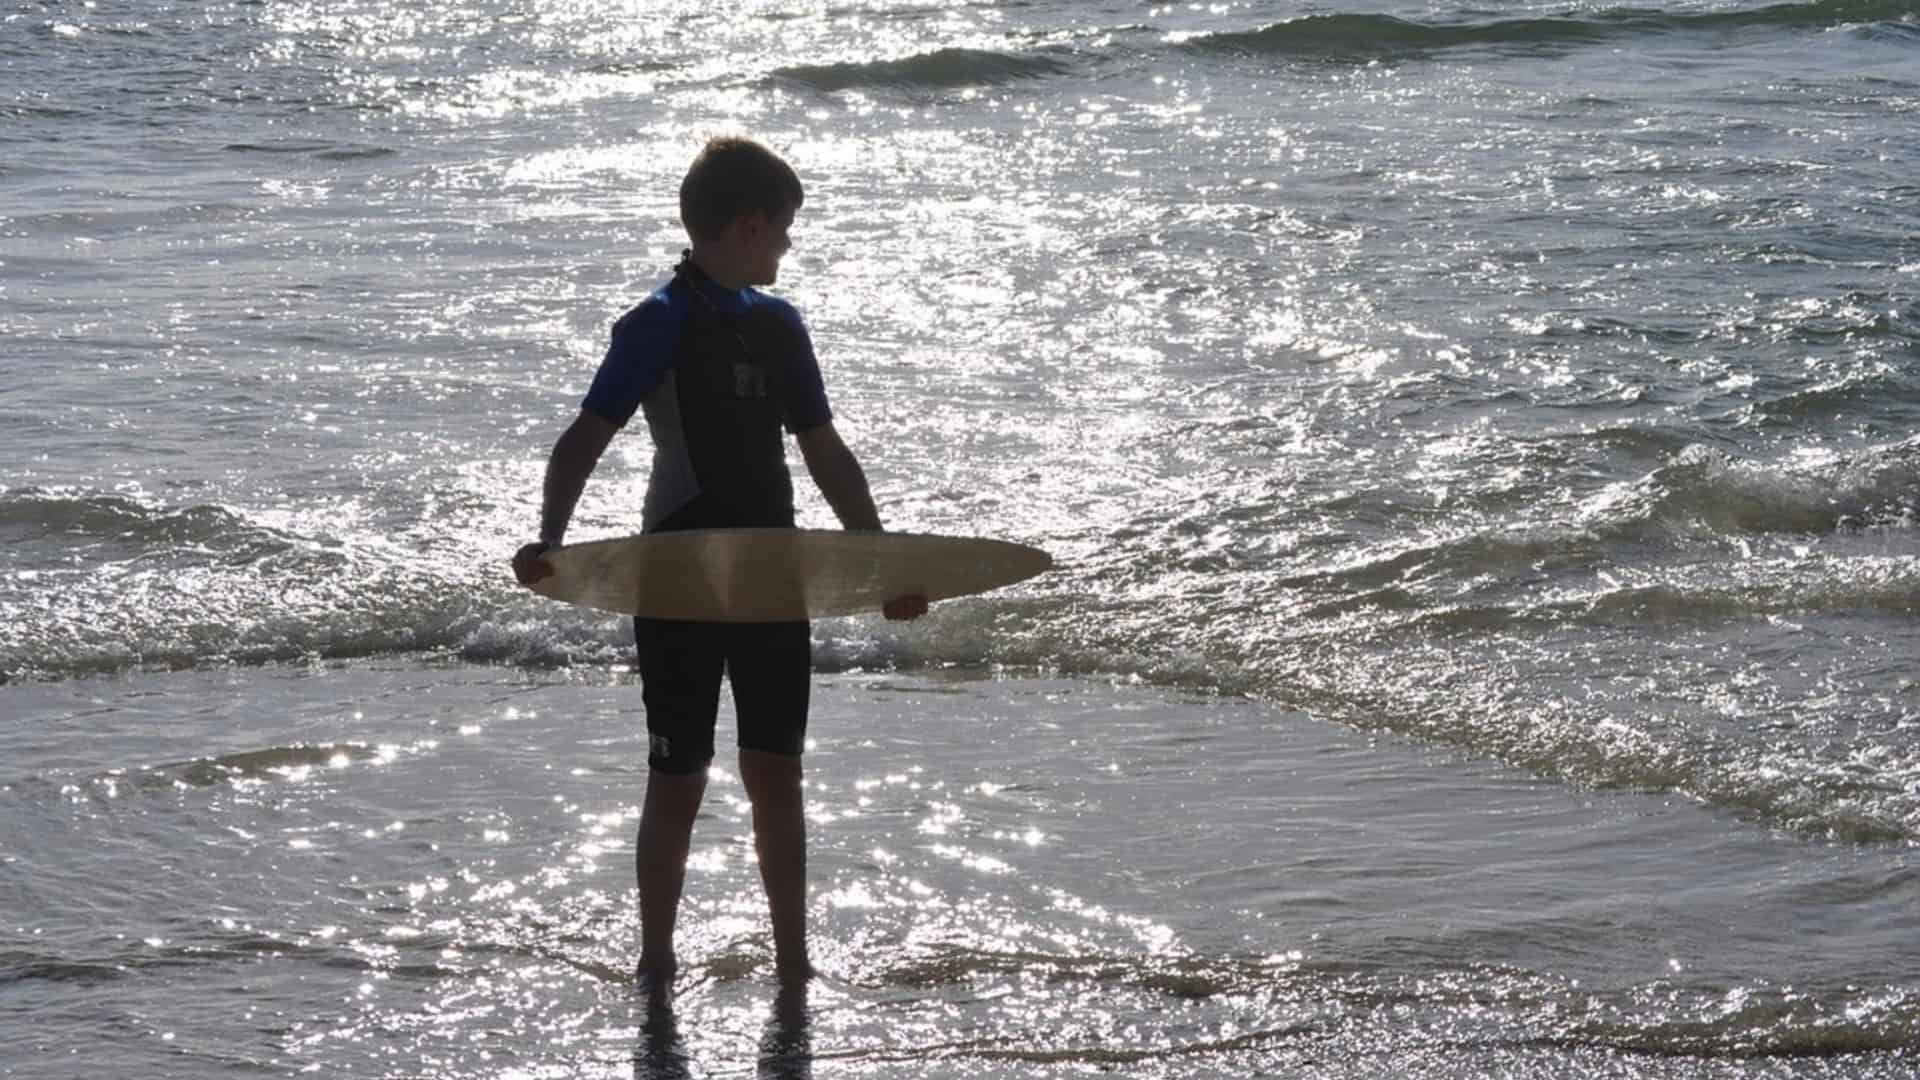 starting out skimboarding